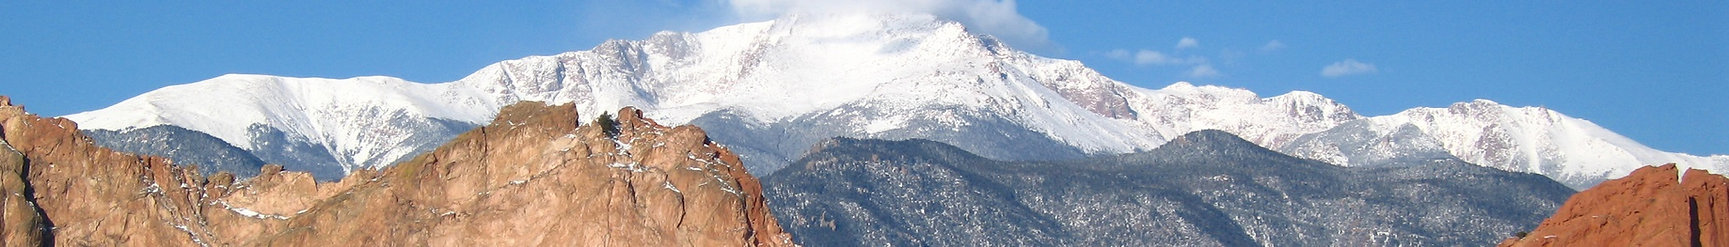 Pikes_Peak_from_the_Garden_of_the_Gods_b